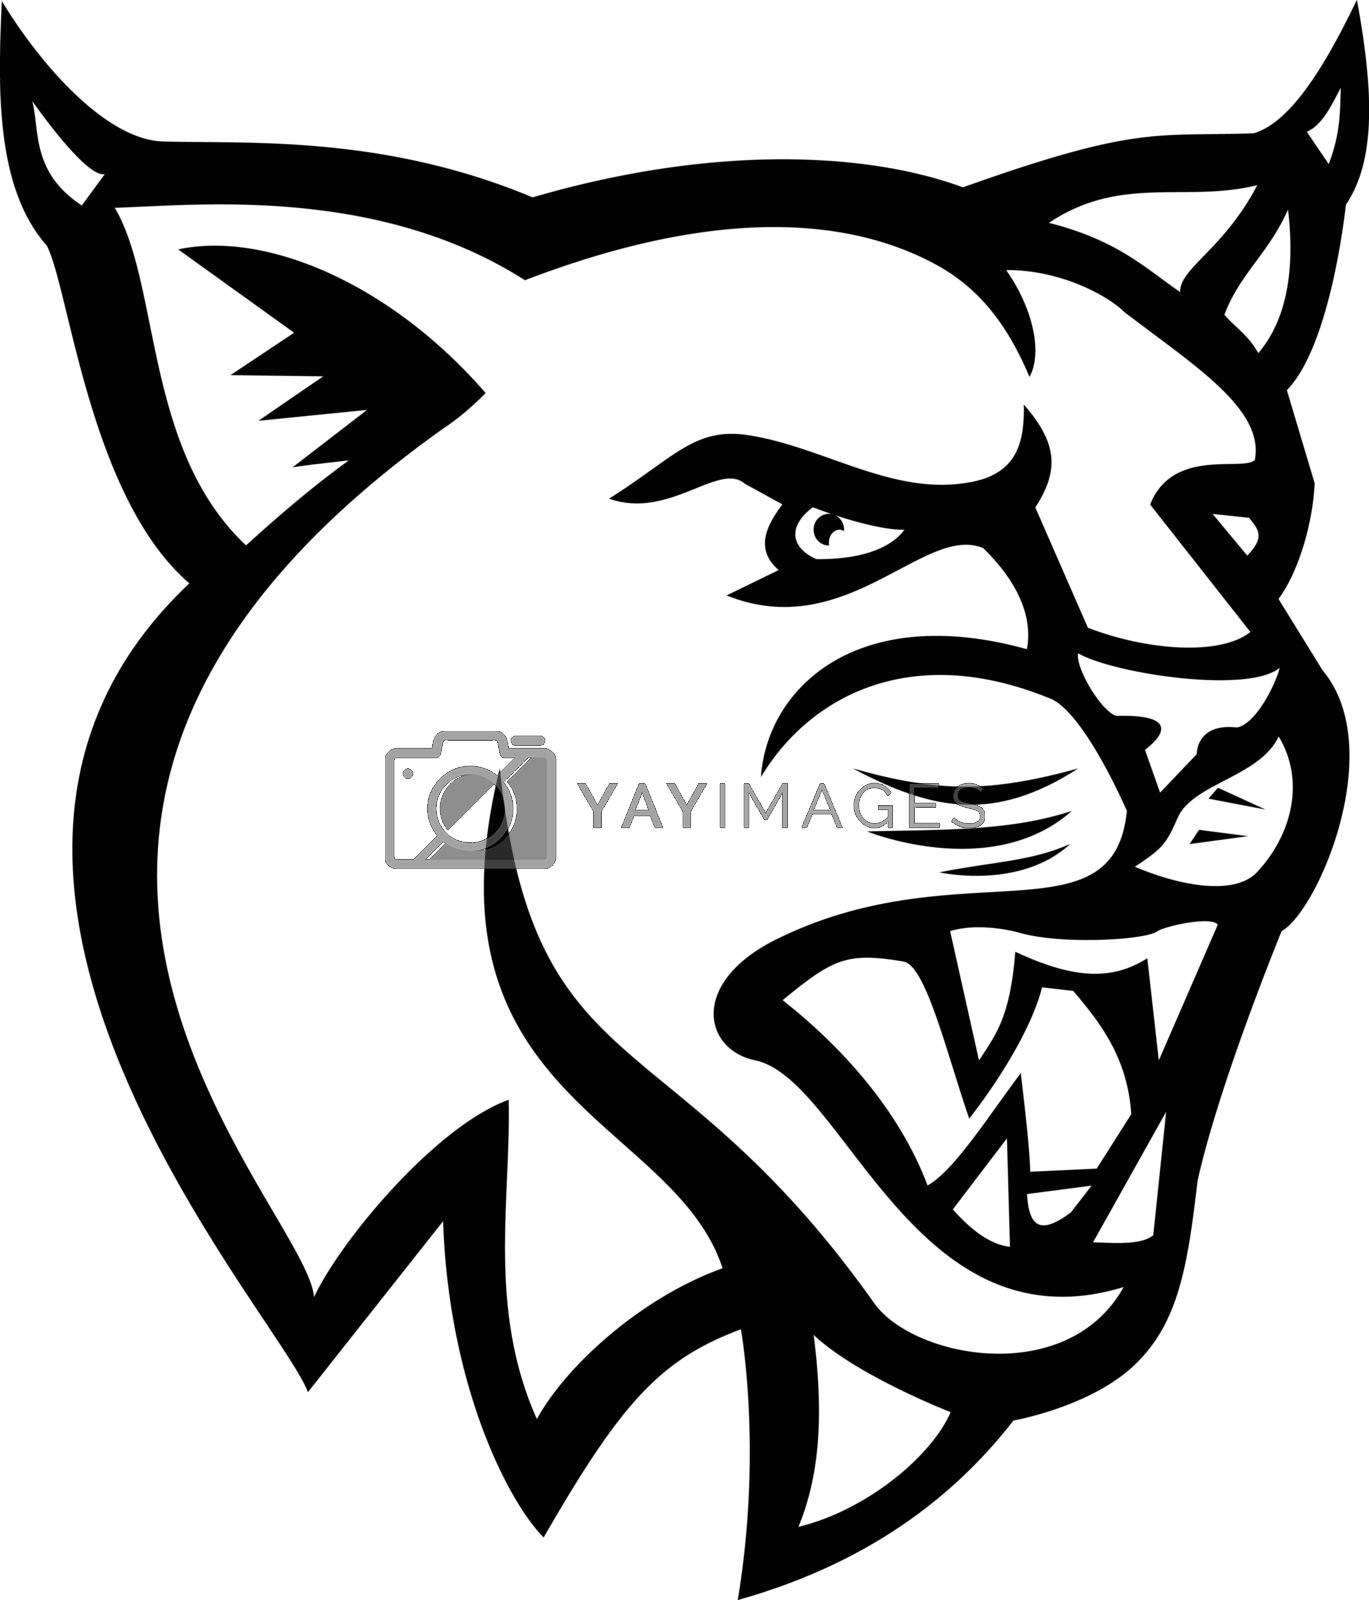 Black and white illustration of head of a lynx, Canada lynx, Eurasian lynx or Bobcat,a medium-sized wild cat   viewed from side on isolated background in retro style.